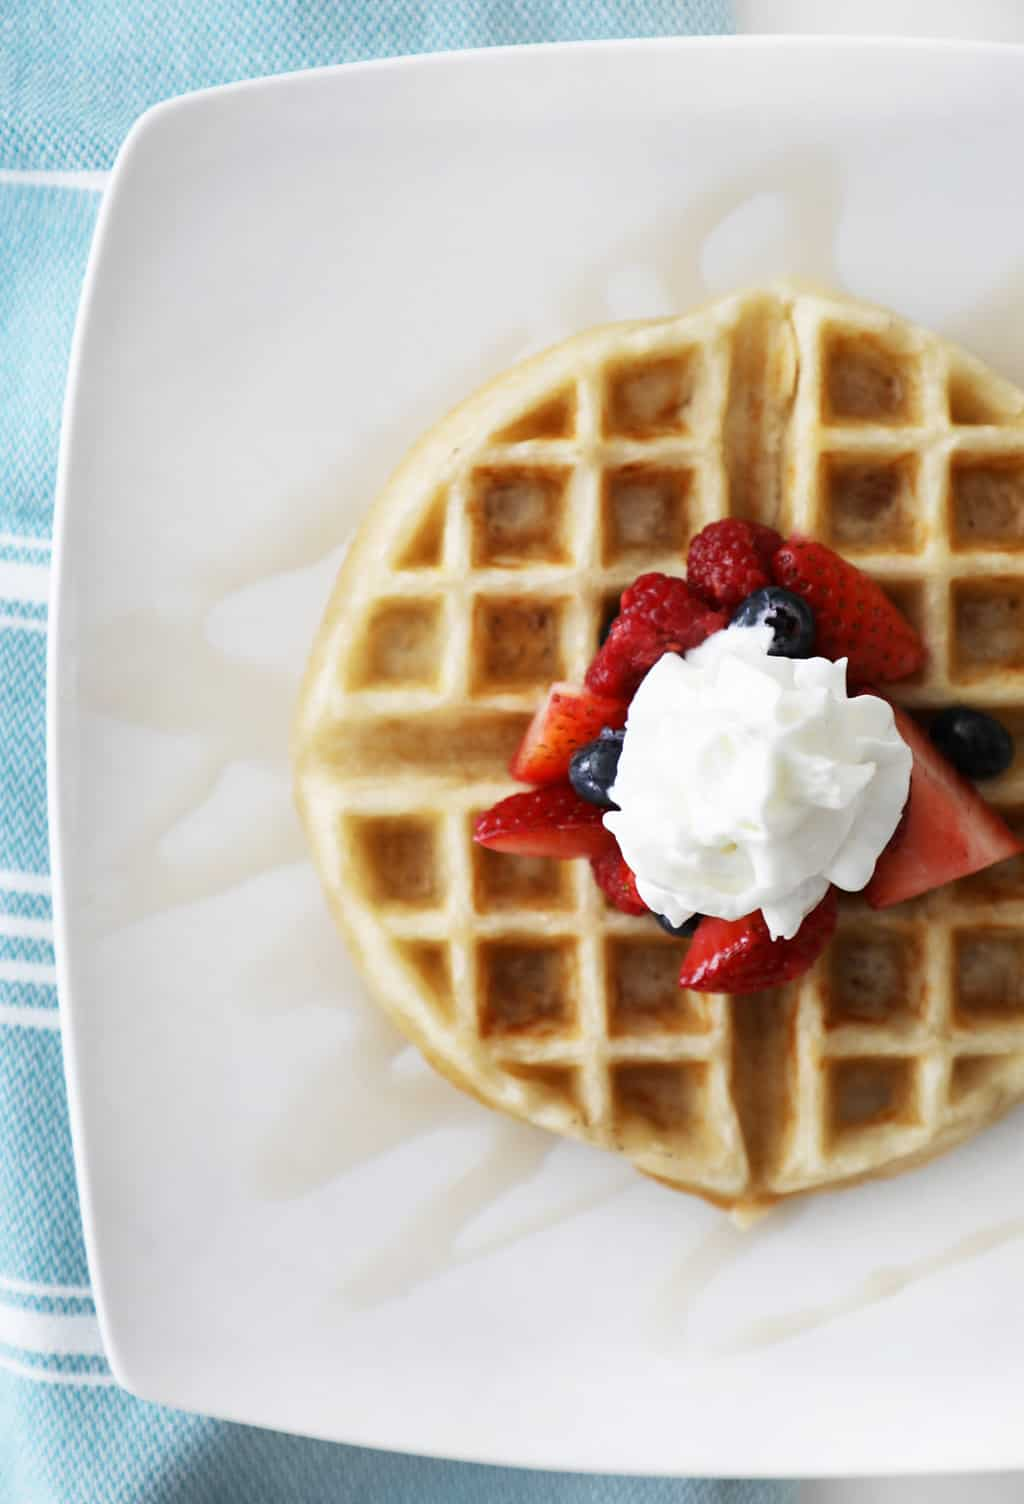 birds eye view of a Belgian waffle with berries and whipped cream